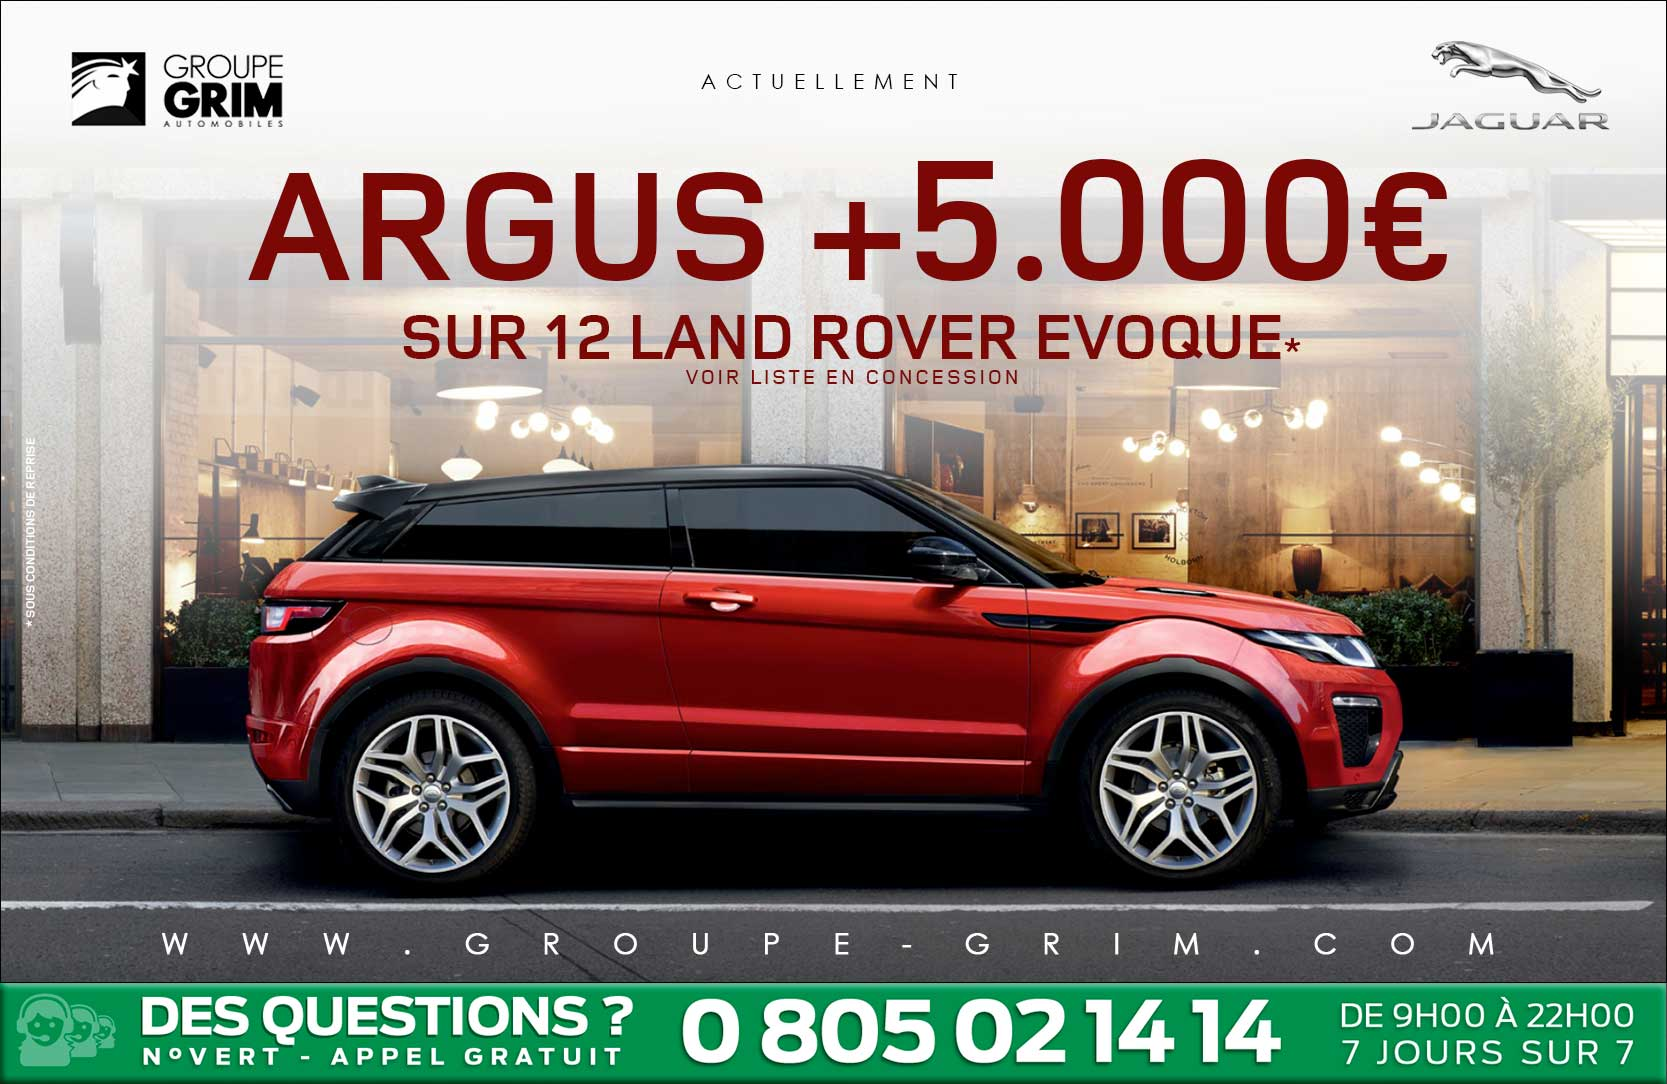 land rover evoque argus jaguar montpellier land rover montpellier land rover. Black Bedroom Furniture Sets. Home Design Ideas